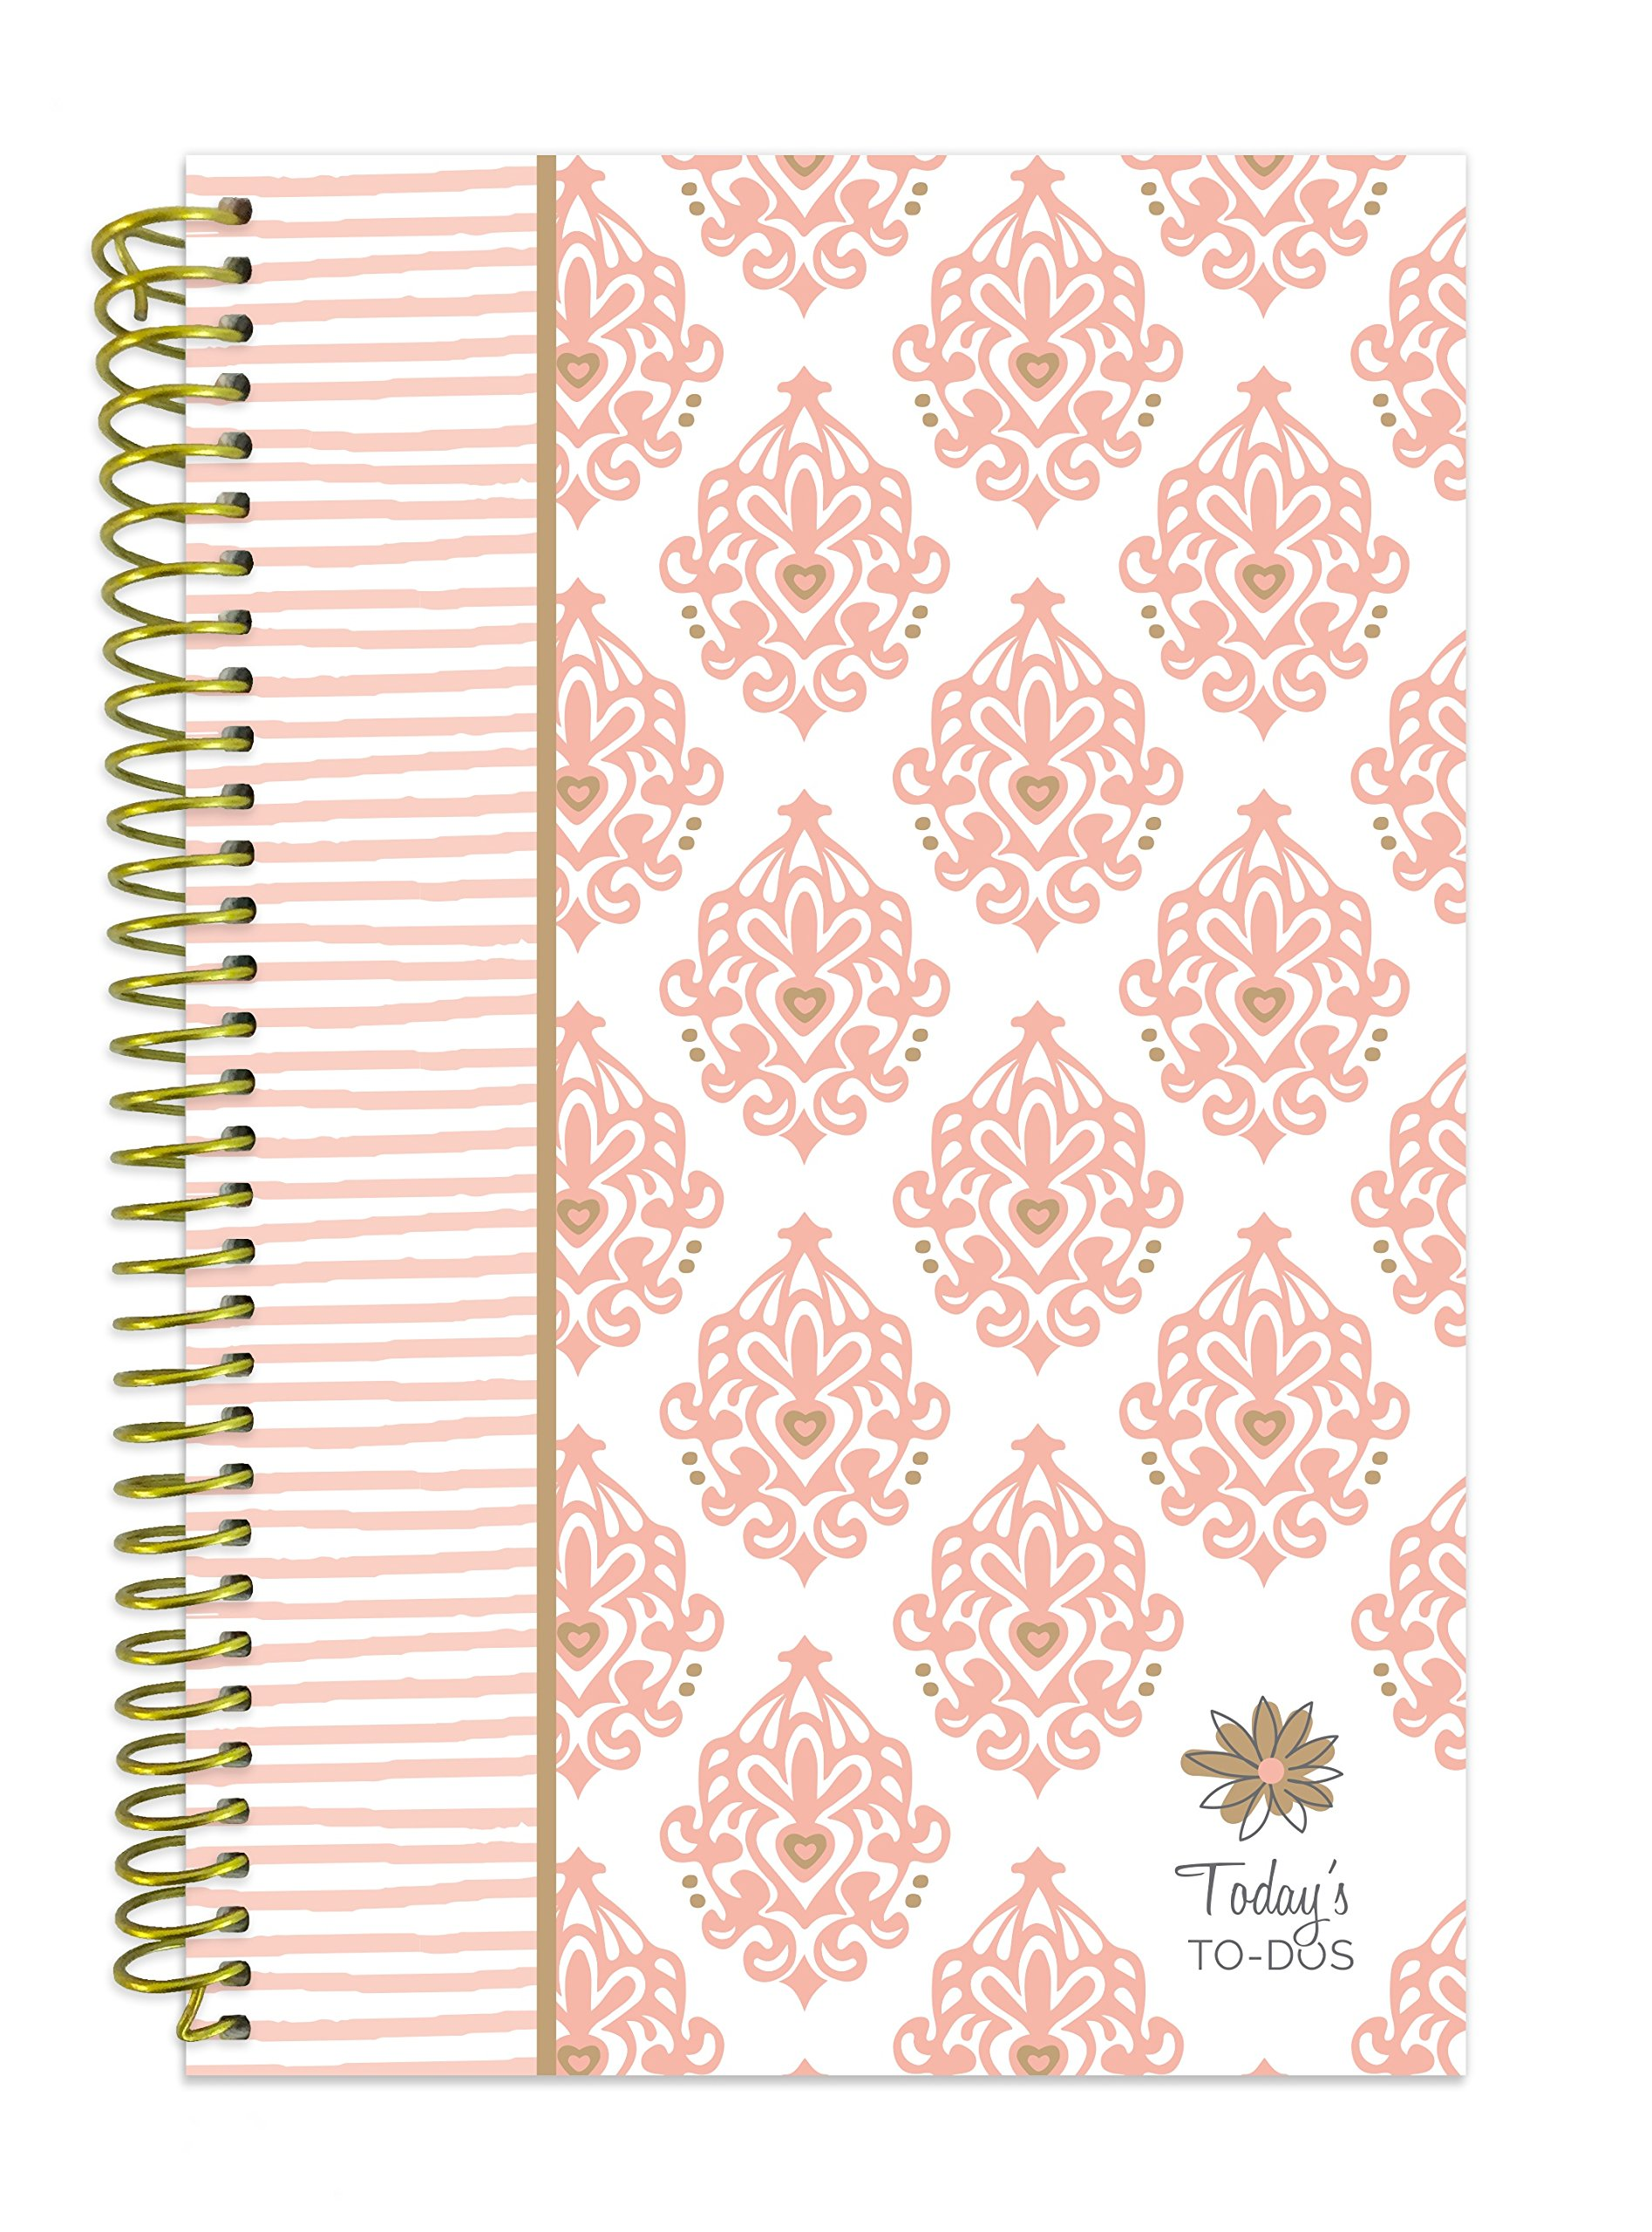 bloom daily planners Bound To-Do List Book - Planning System Tear Off To Do Pads - UNDATED Daily Planner To Do Pad 6'' x 8.25'' - Pink & Gold